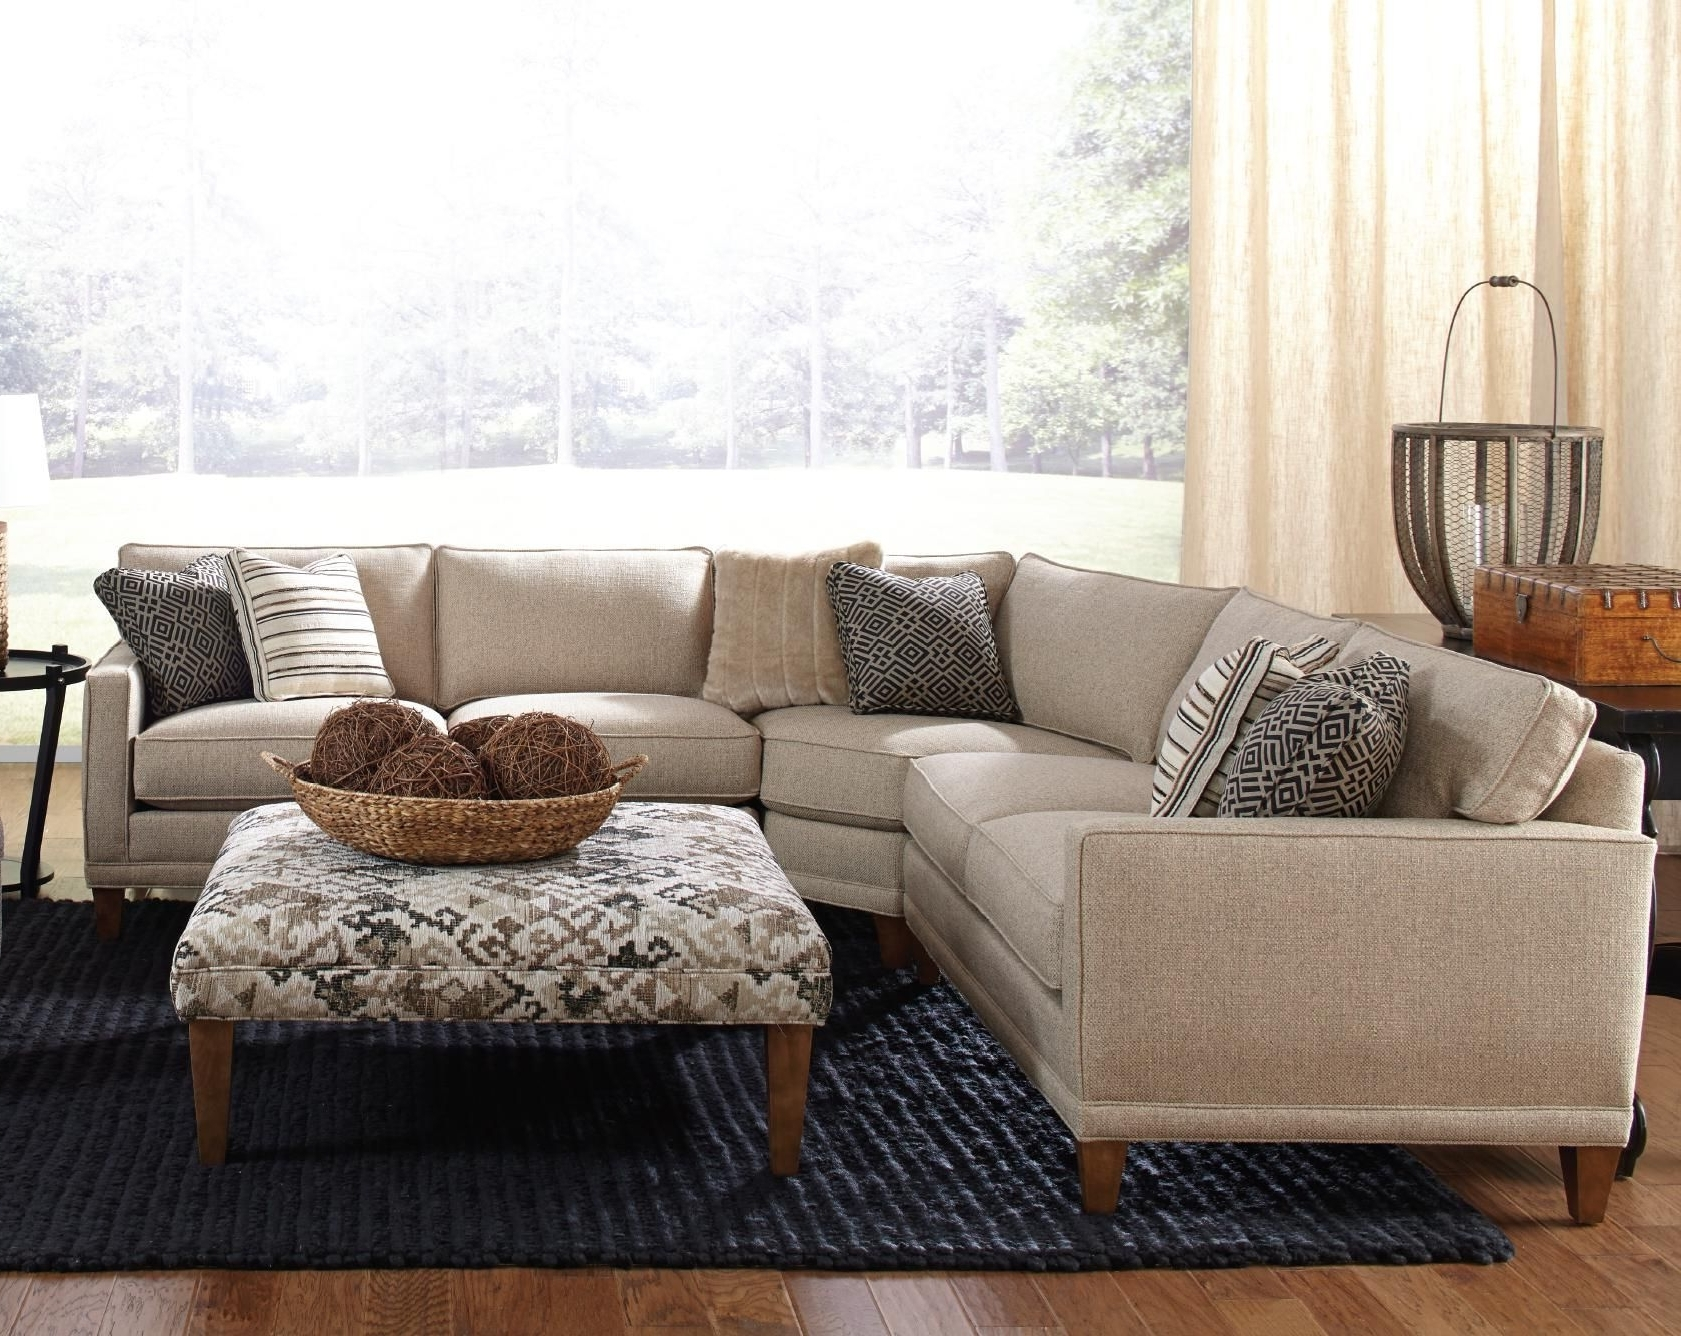 2018 Rowe Townsend Contemporary 3 Piece Sectional Sofa – Sprintz Within Nashville Sectional Sofas (View 5 of 15)